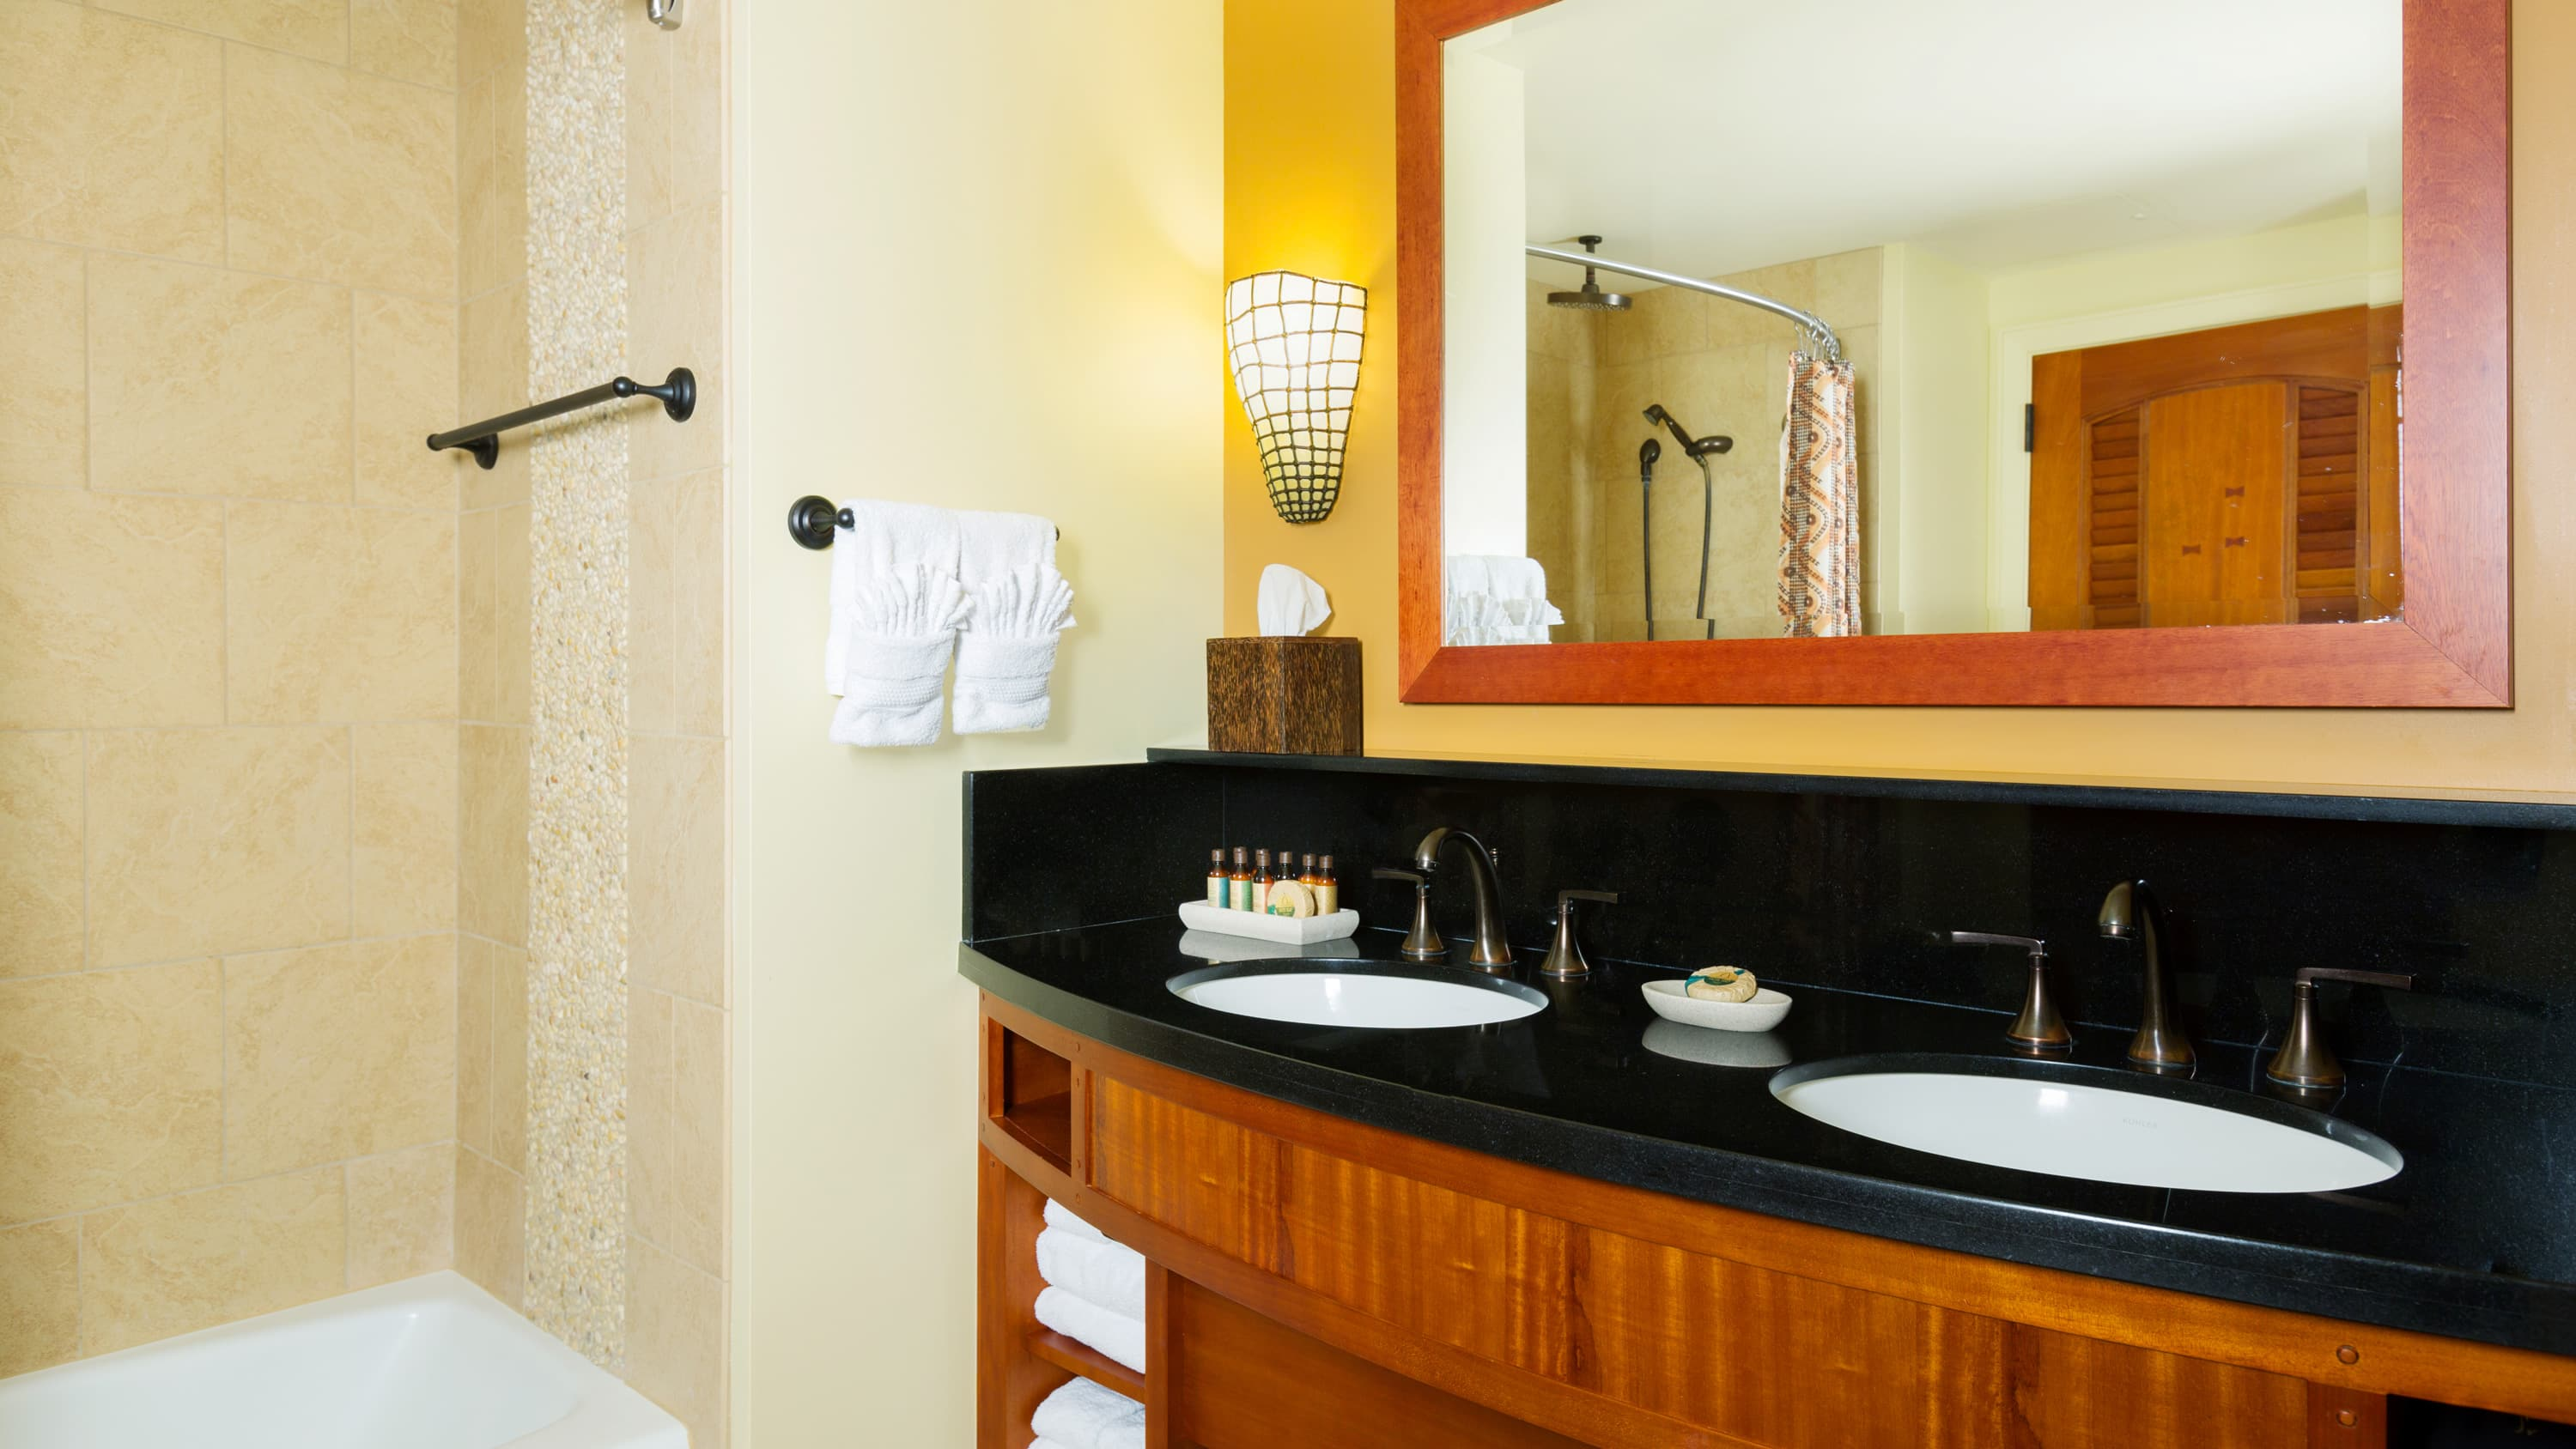 A sink with towels, a mirror and toiletries near a bathtub